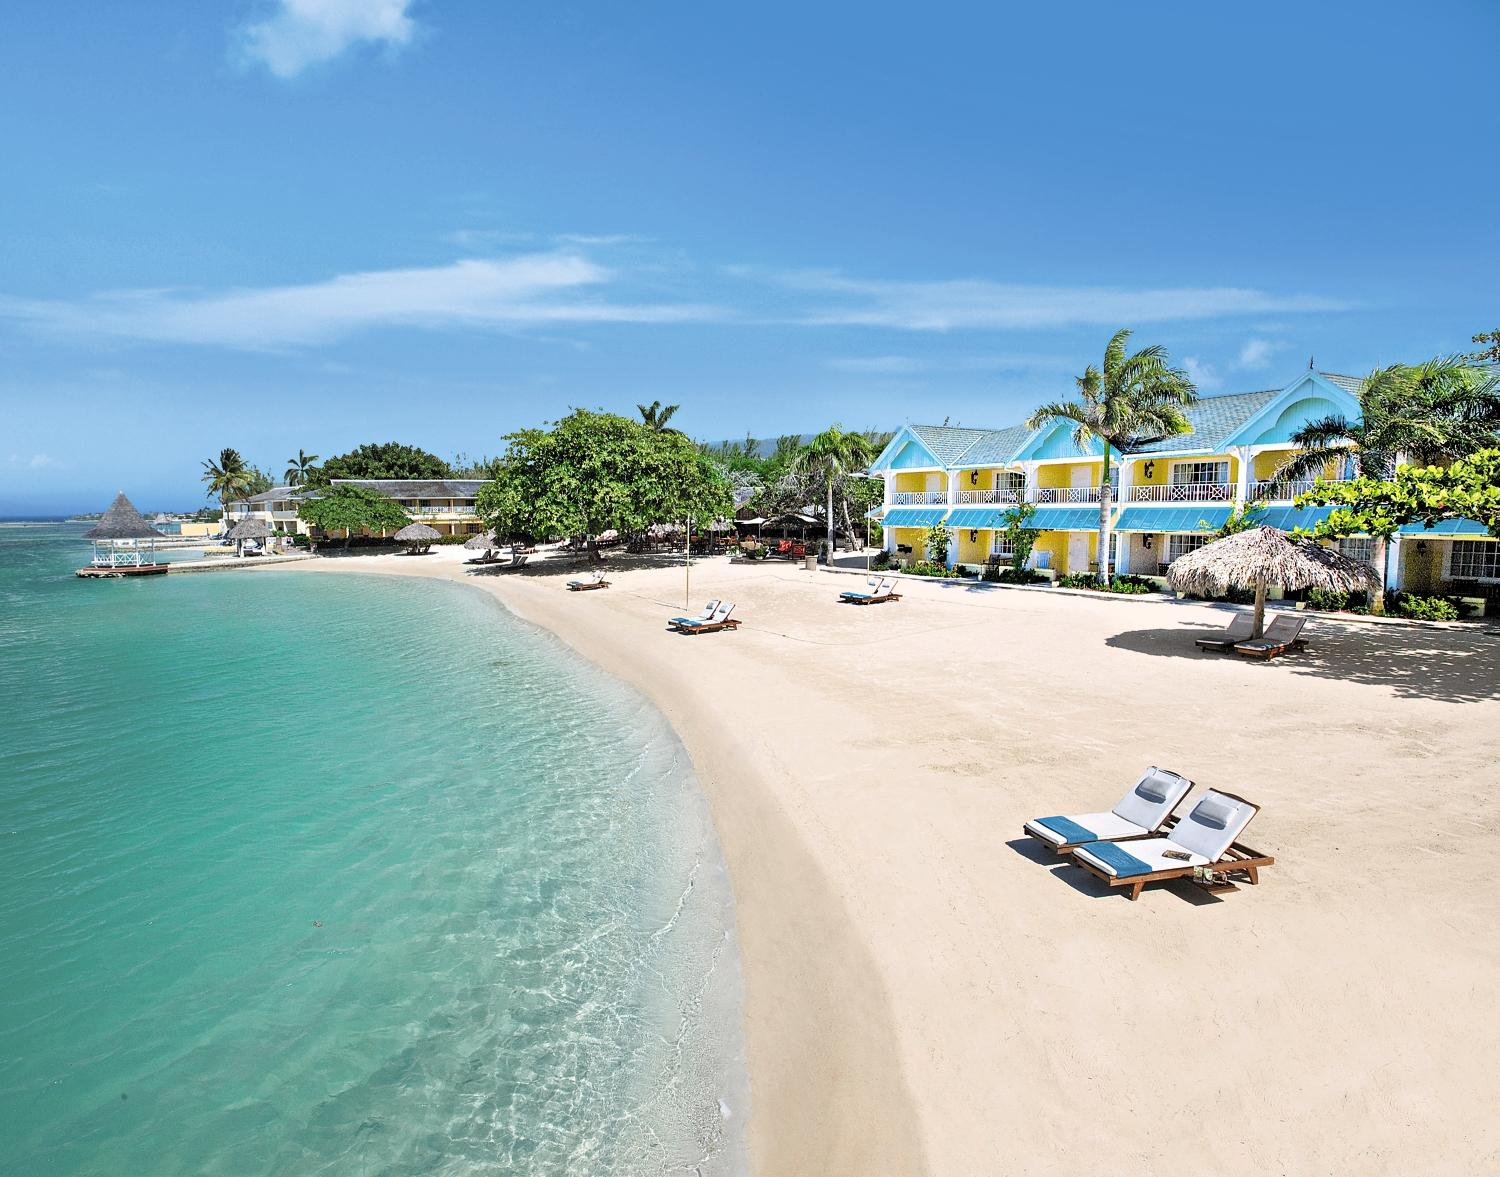 Sandals Royal Caribbean Resort & Private Island - - Adult Only - 5*